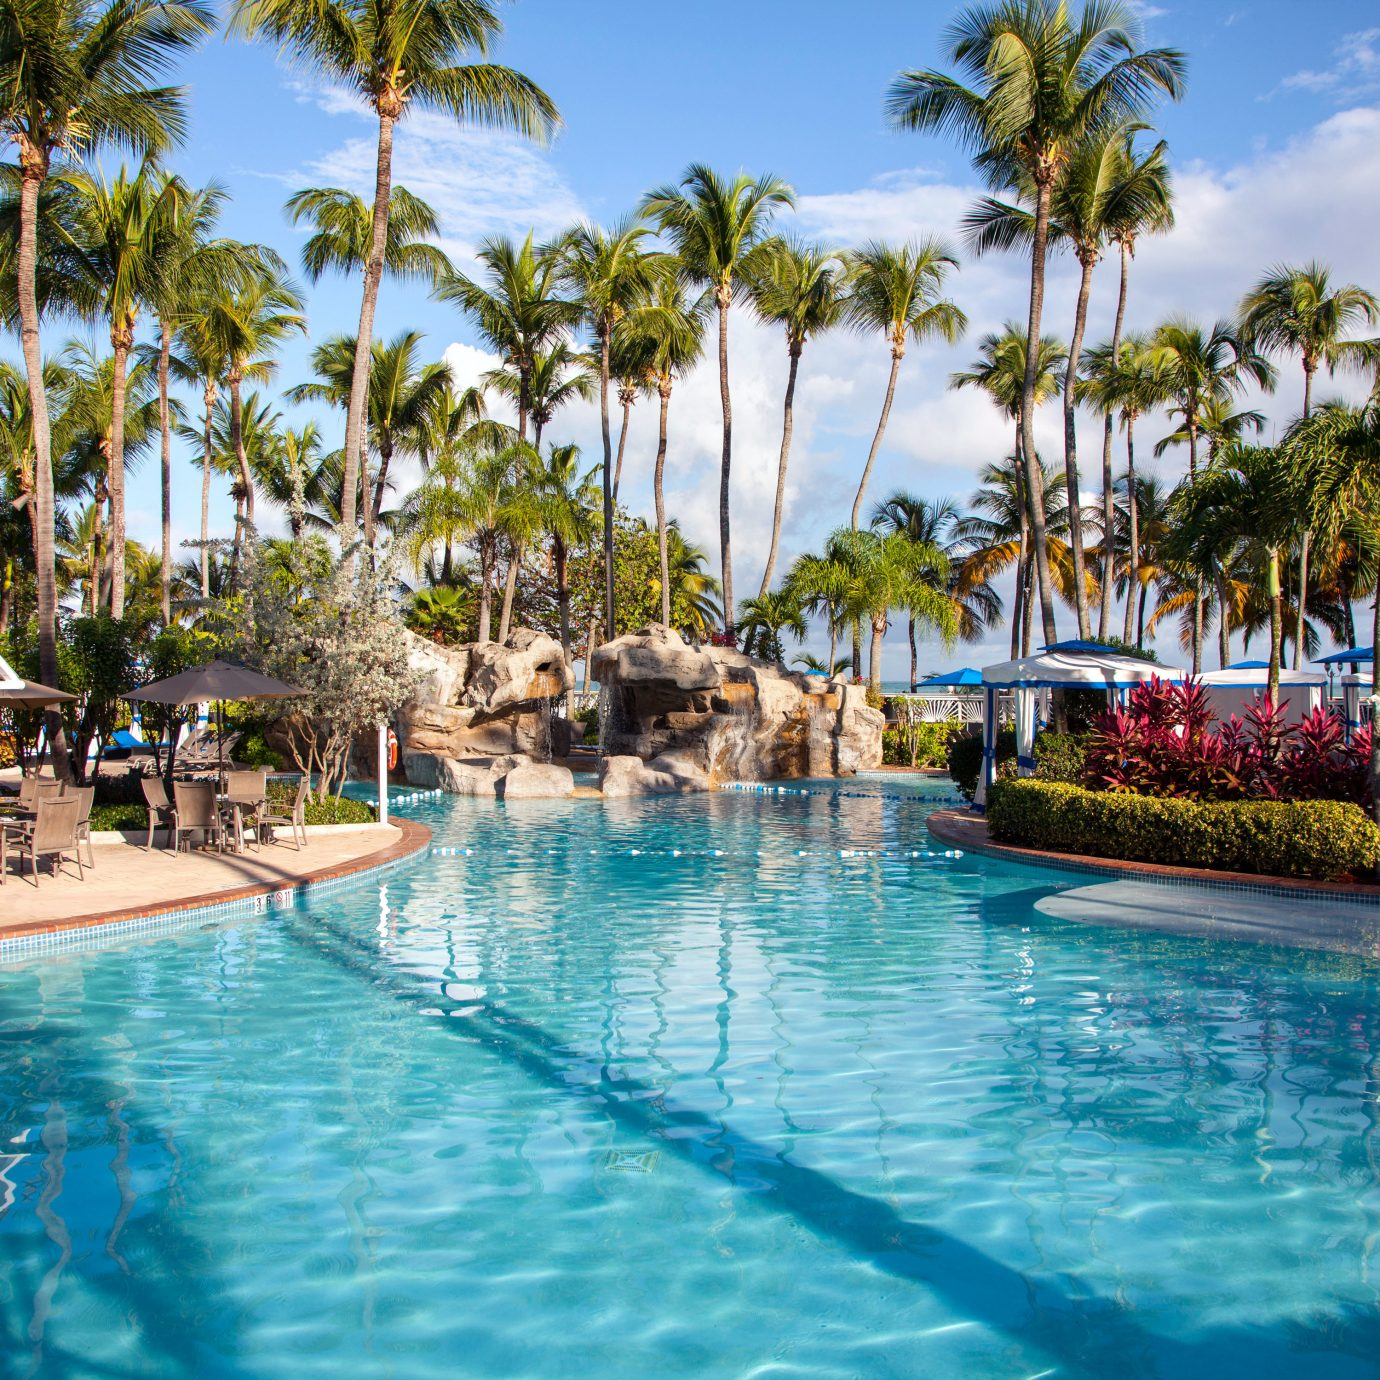 Outdoors Play Pool Resort tree water sky swimming pool leisure palm swimming caribbean resort town Lagoon arecales Sea Water park lined surrounded